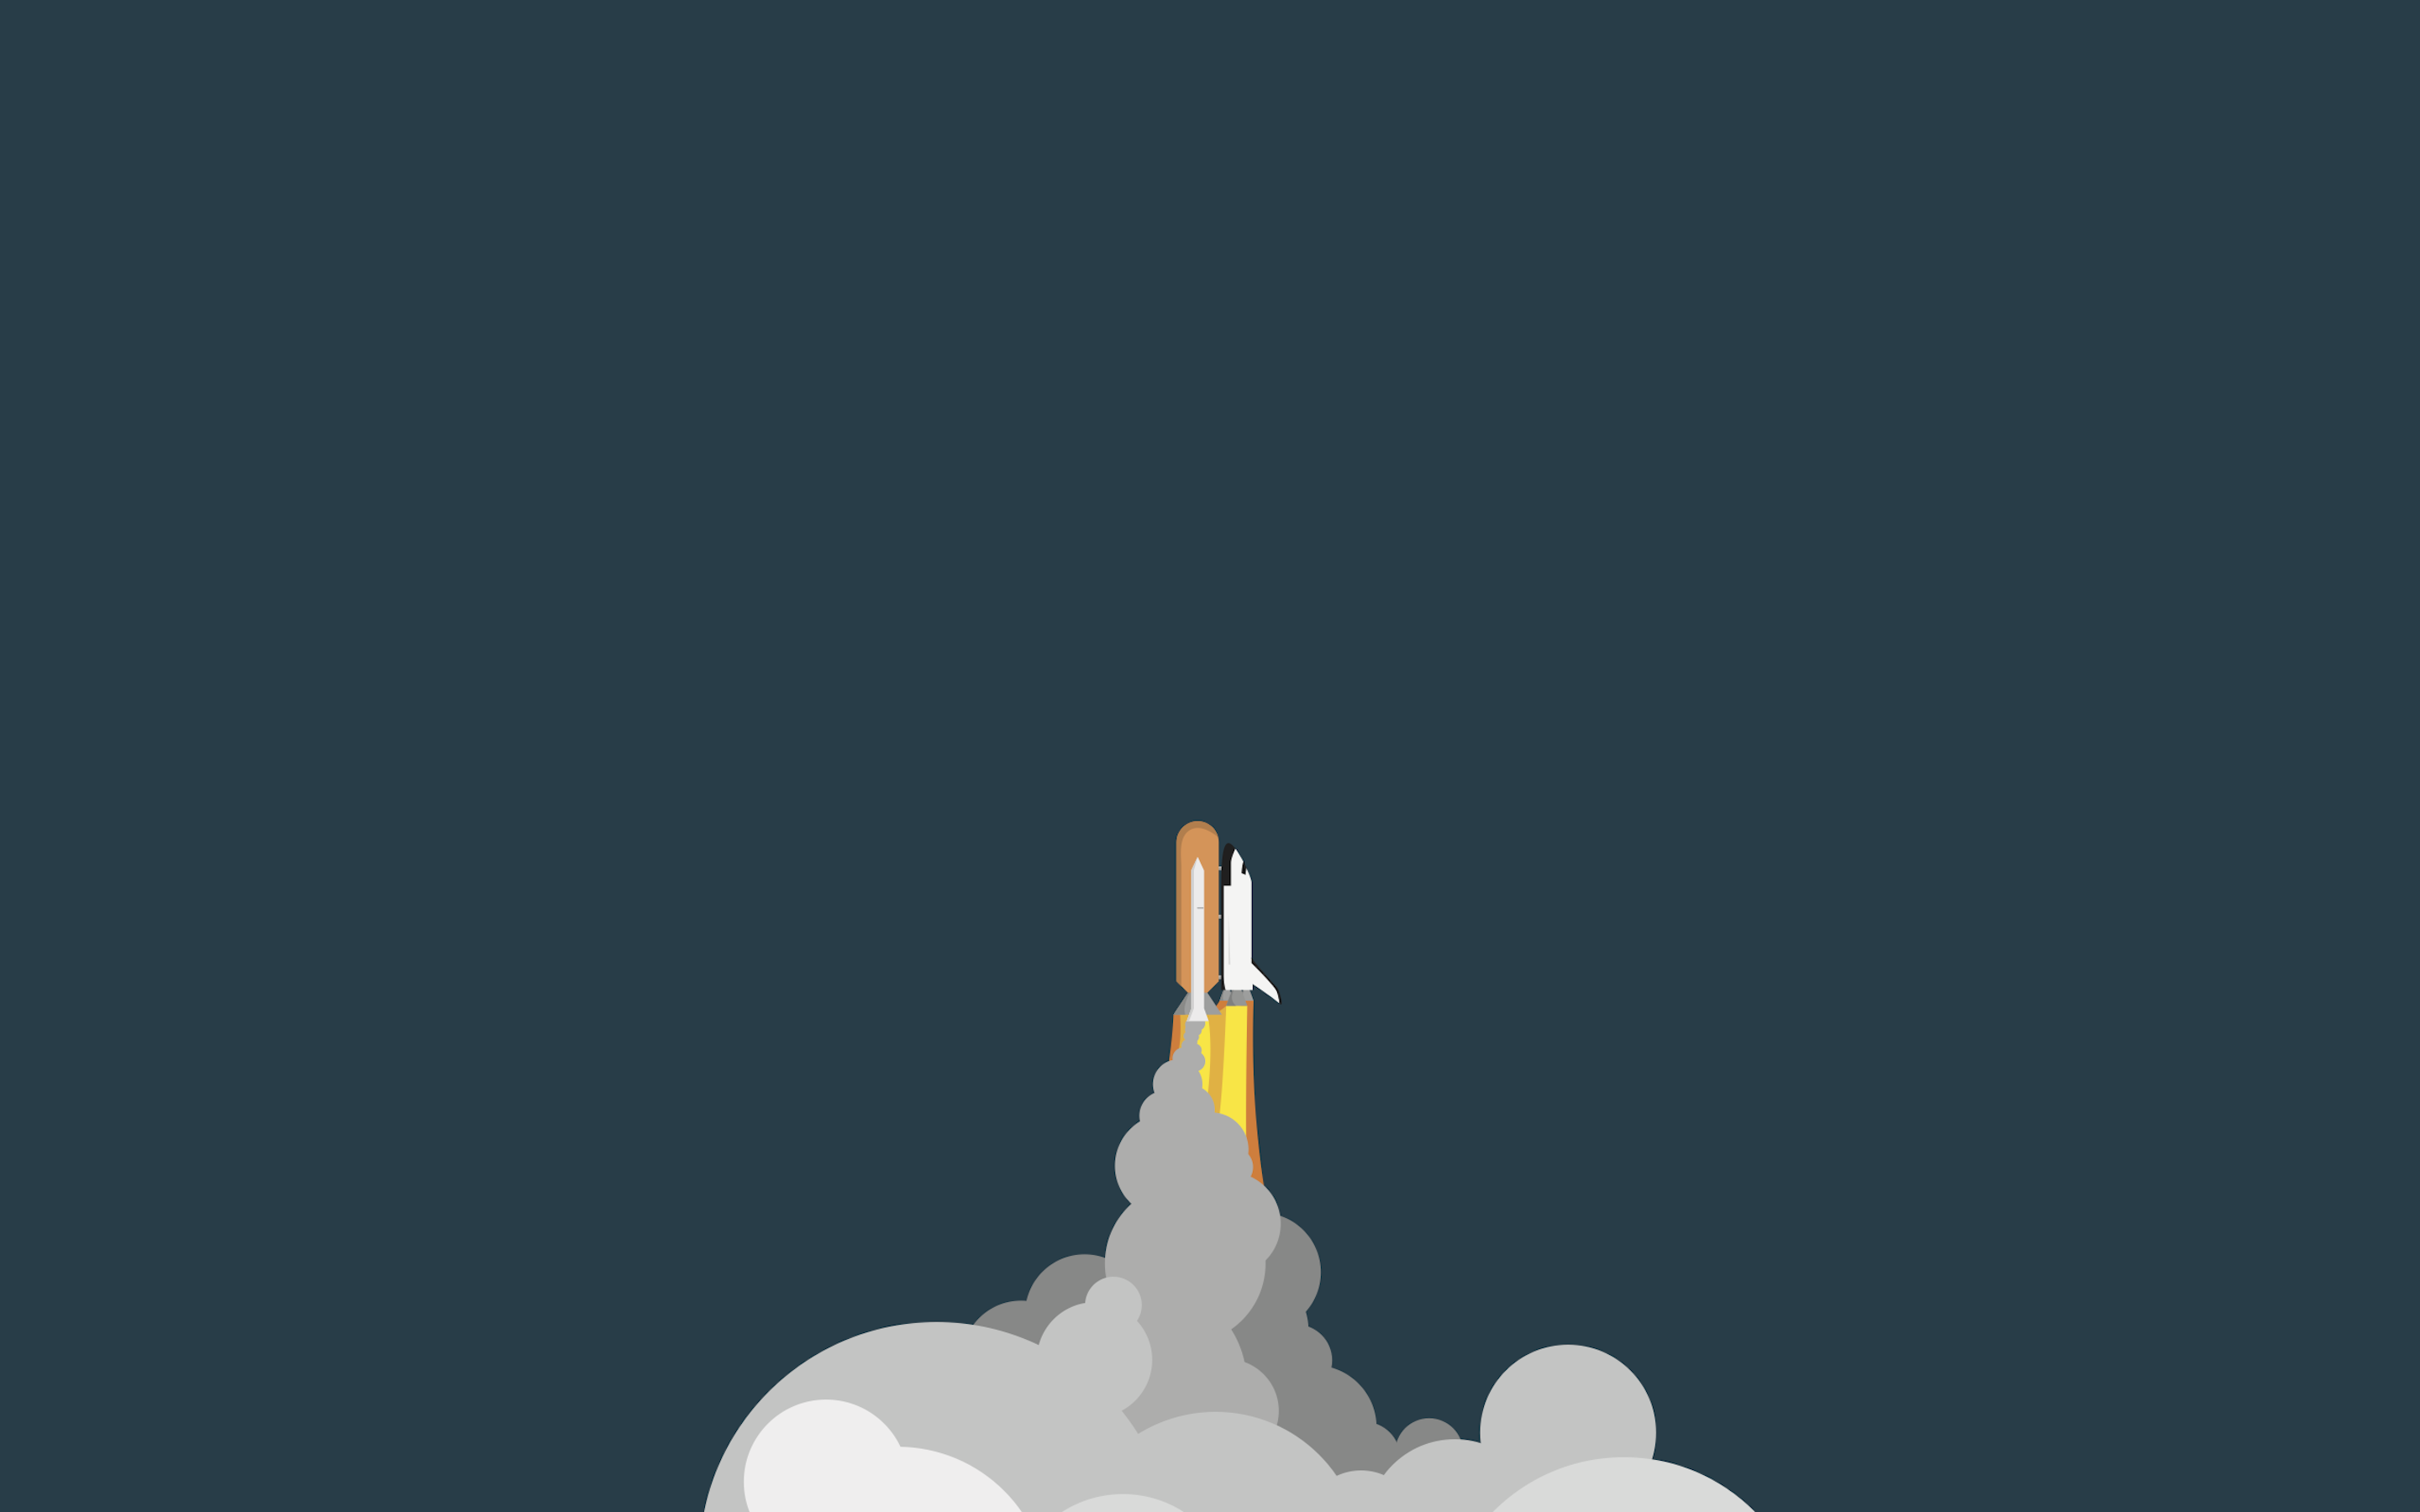 General 2880x1800 space shuttle artwork space art vehicle simple background smoke space